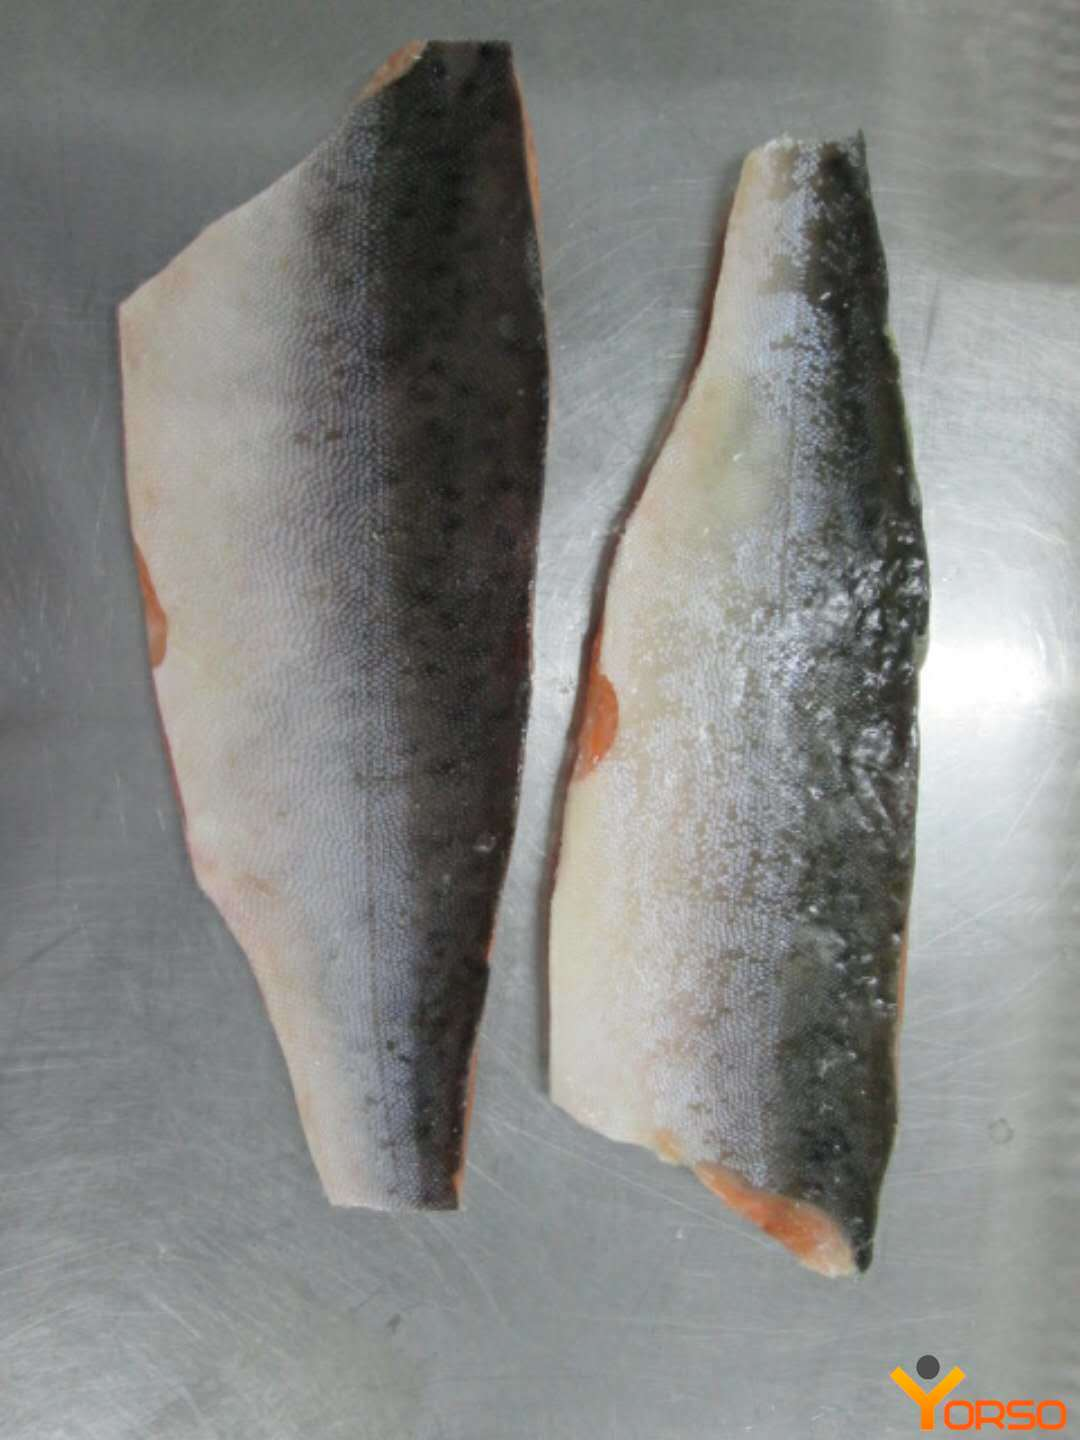 Fillet of salmon, n/a, 200-400